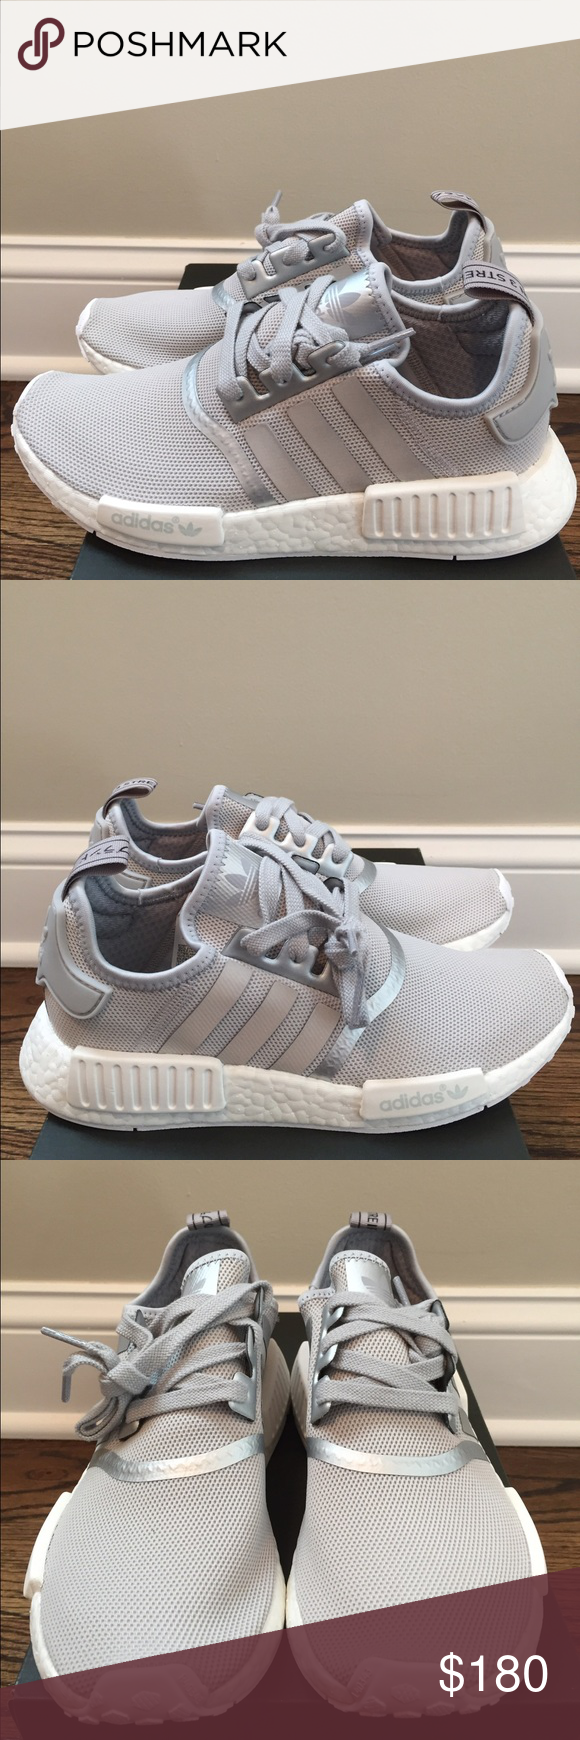 nuove adidas nmd r1 silver / via le donne bianche nwt pinterest